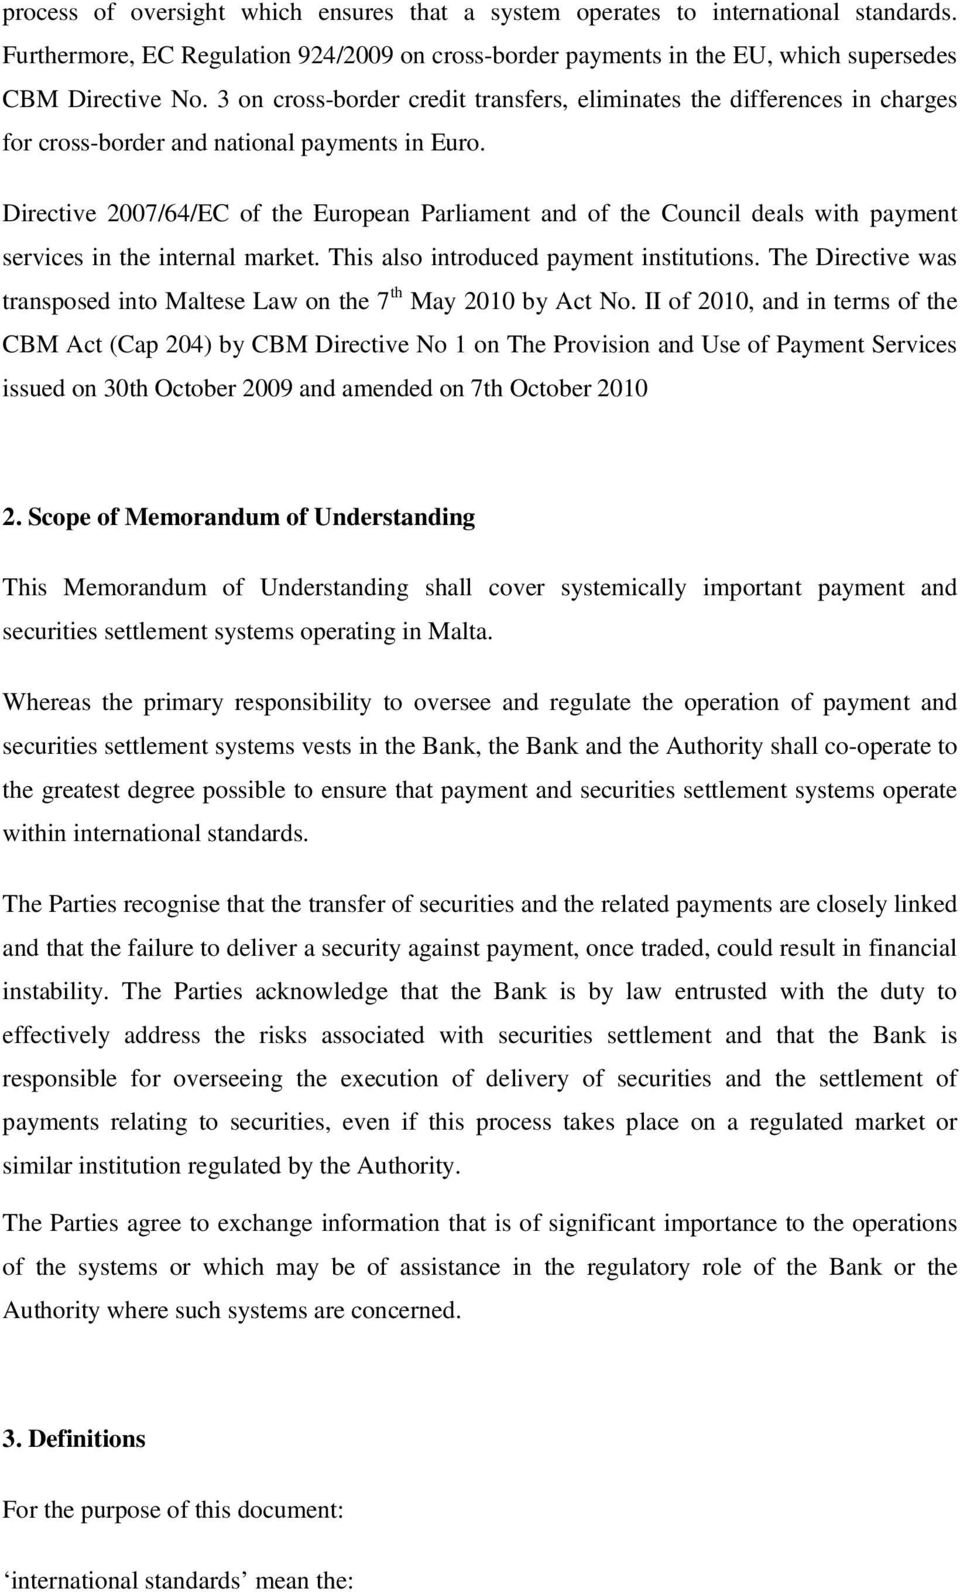 Directive 2007/64/EC of the European Parliament and of the Council deals with payment services in the internal market. This also introduced payment institutions.